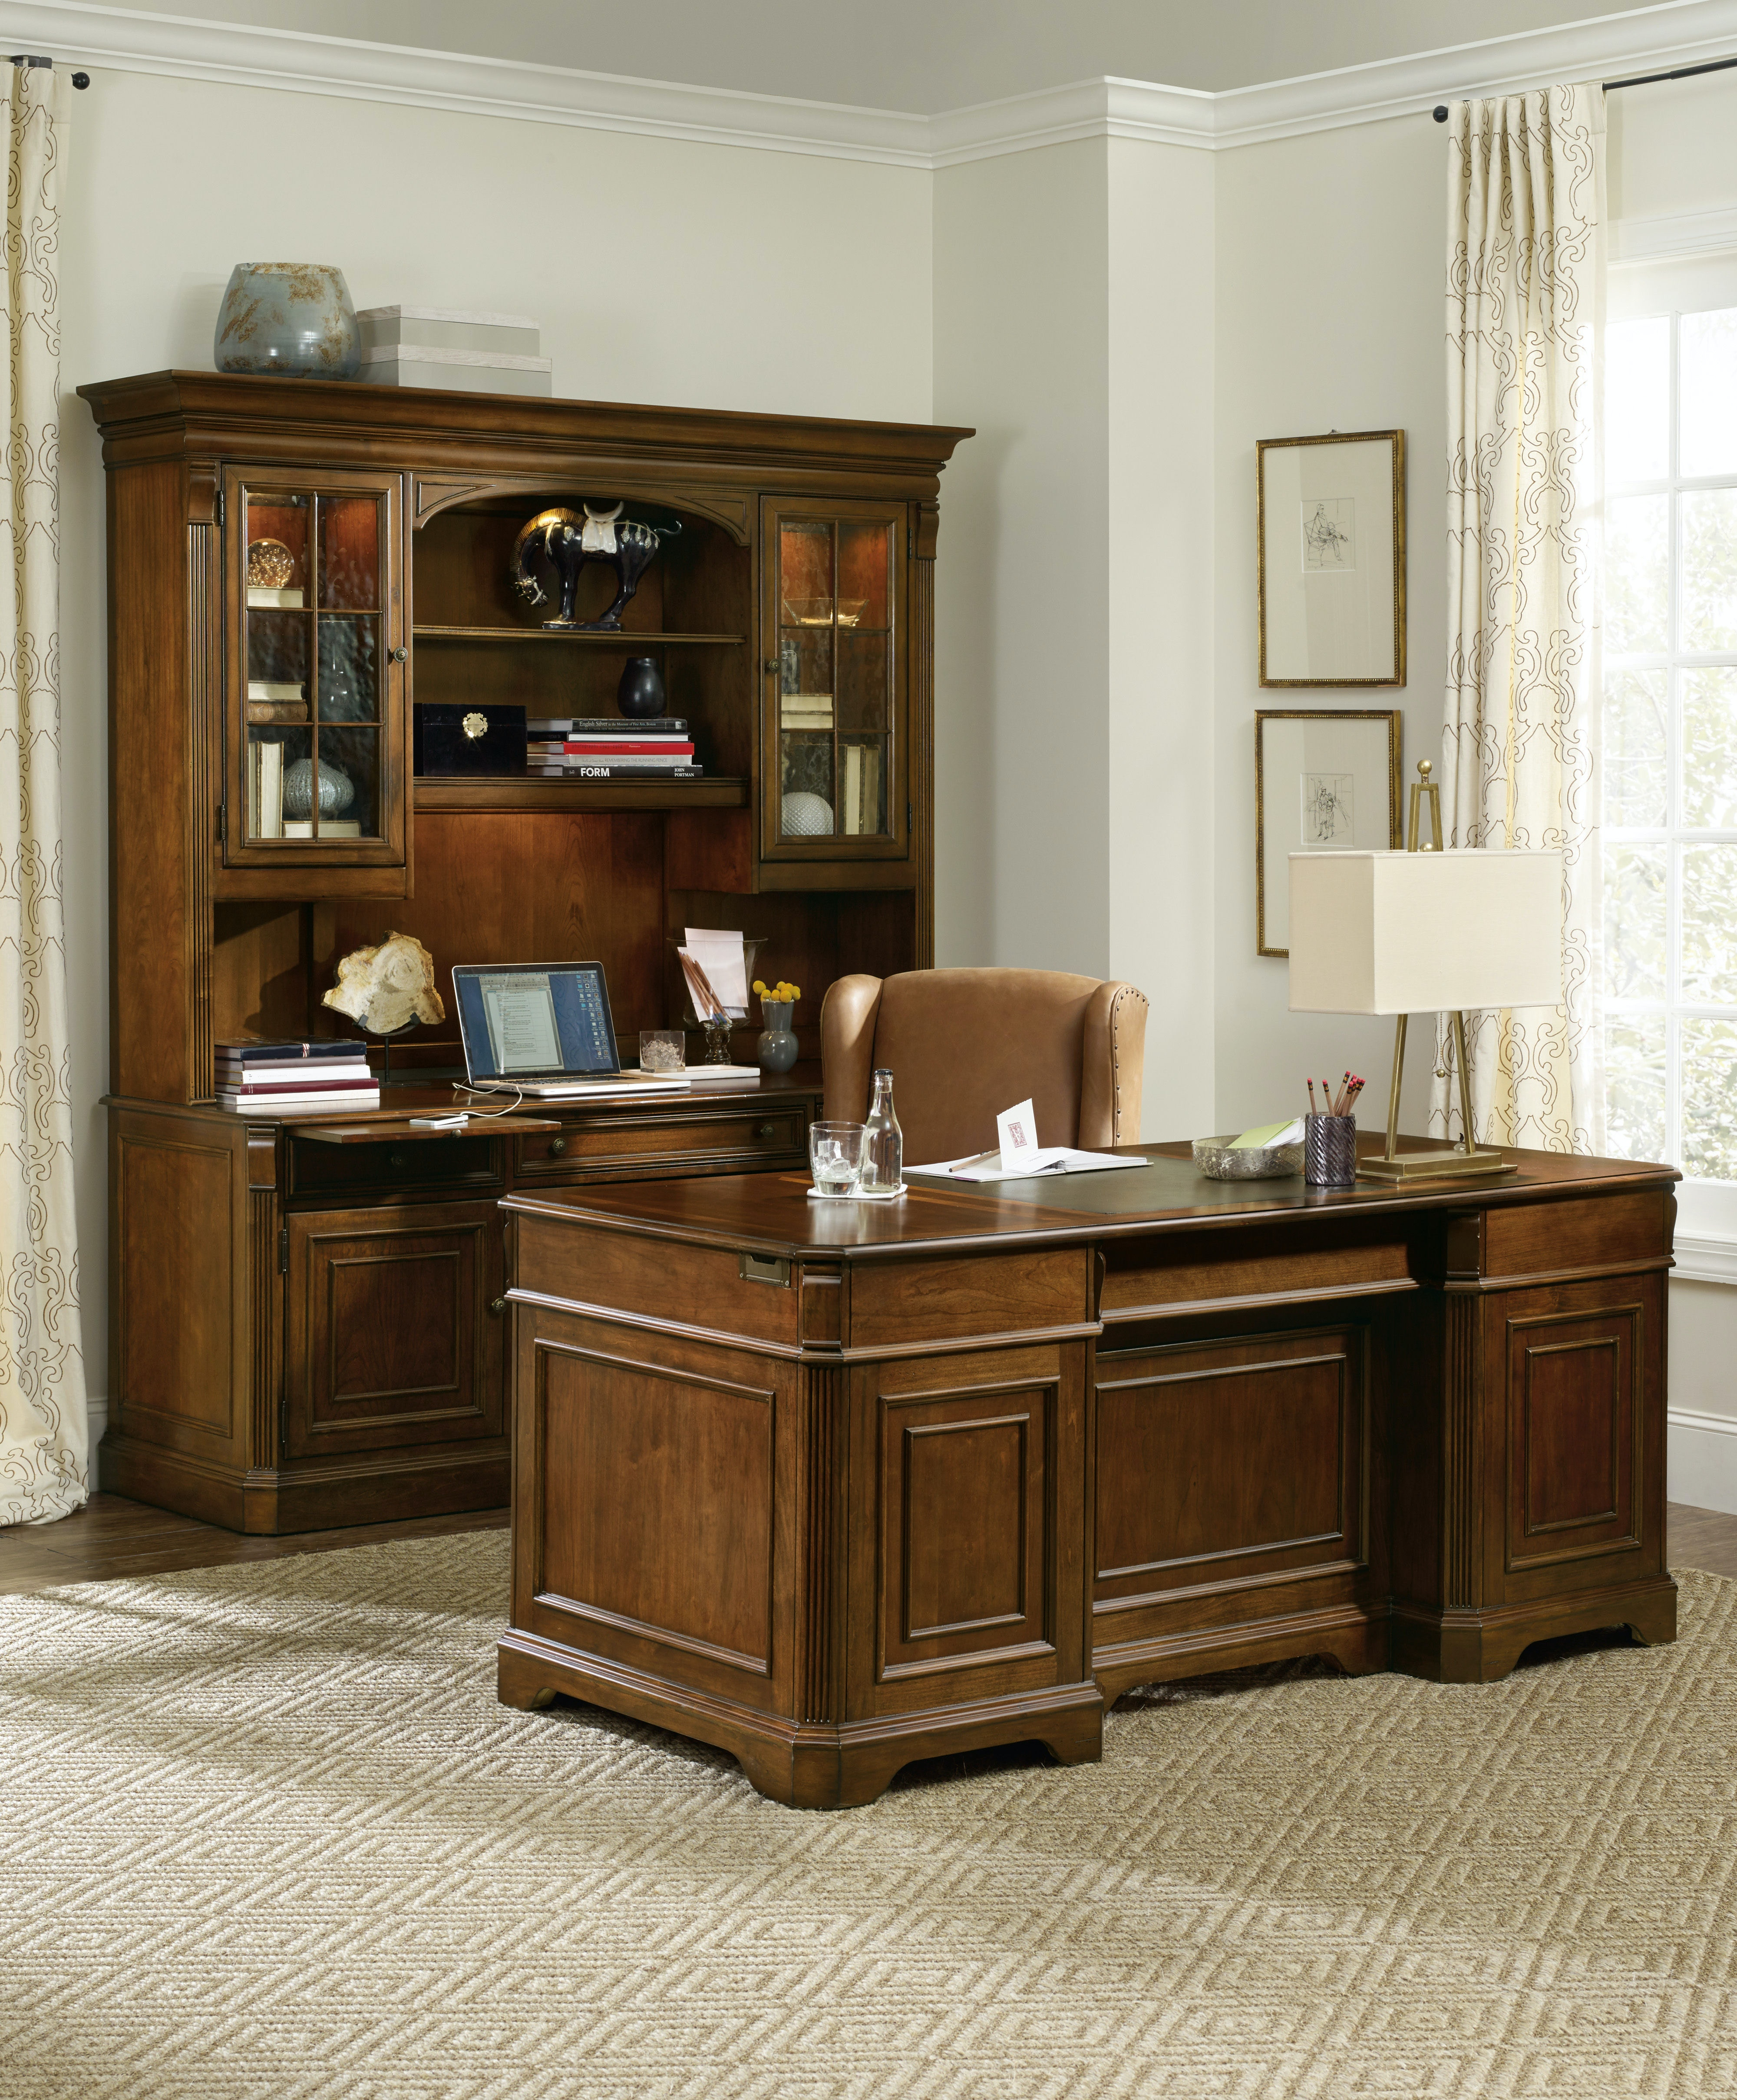 boulevard item executive double furnishings collections hooker home pedestal furniture odp desk telluride desks